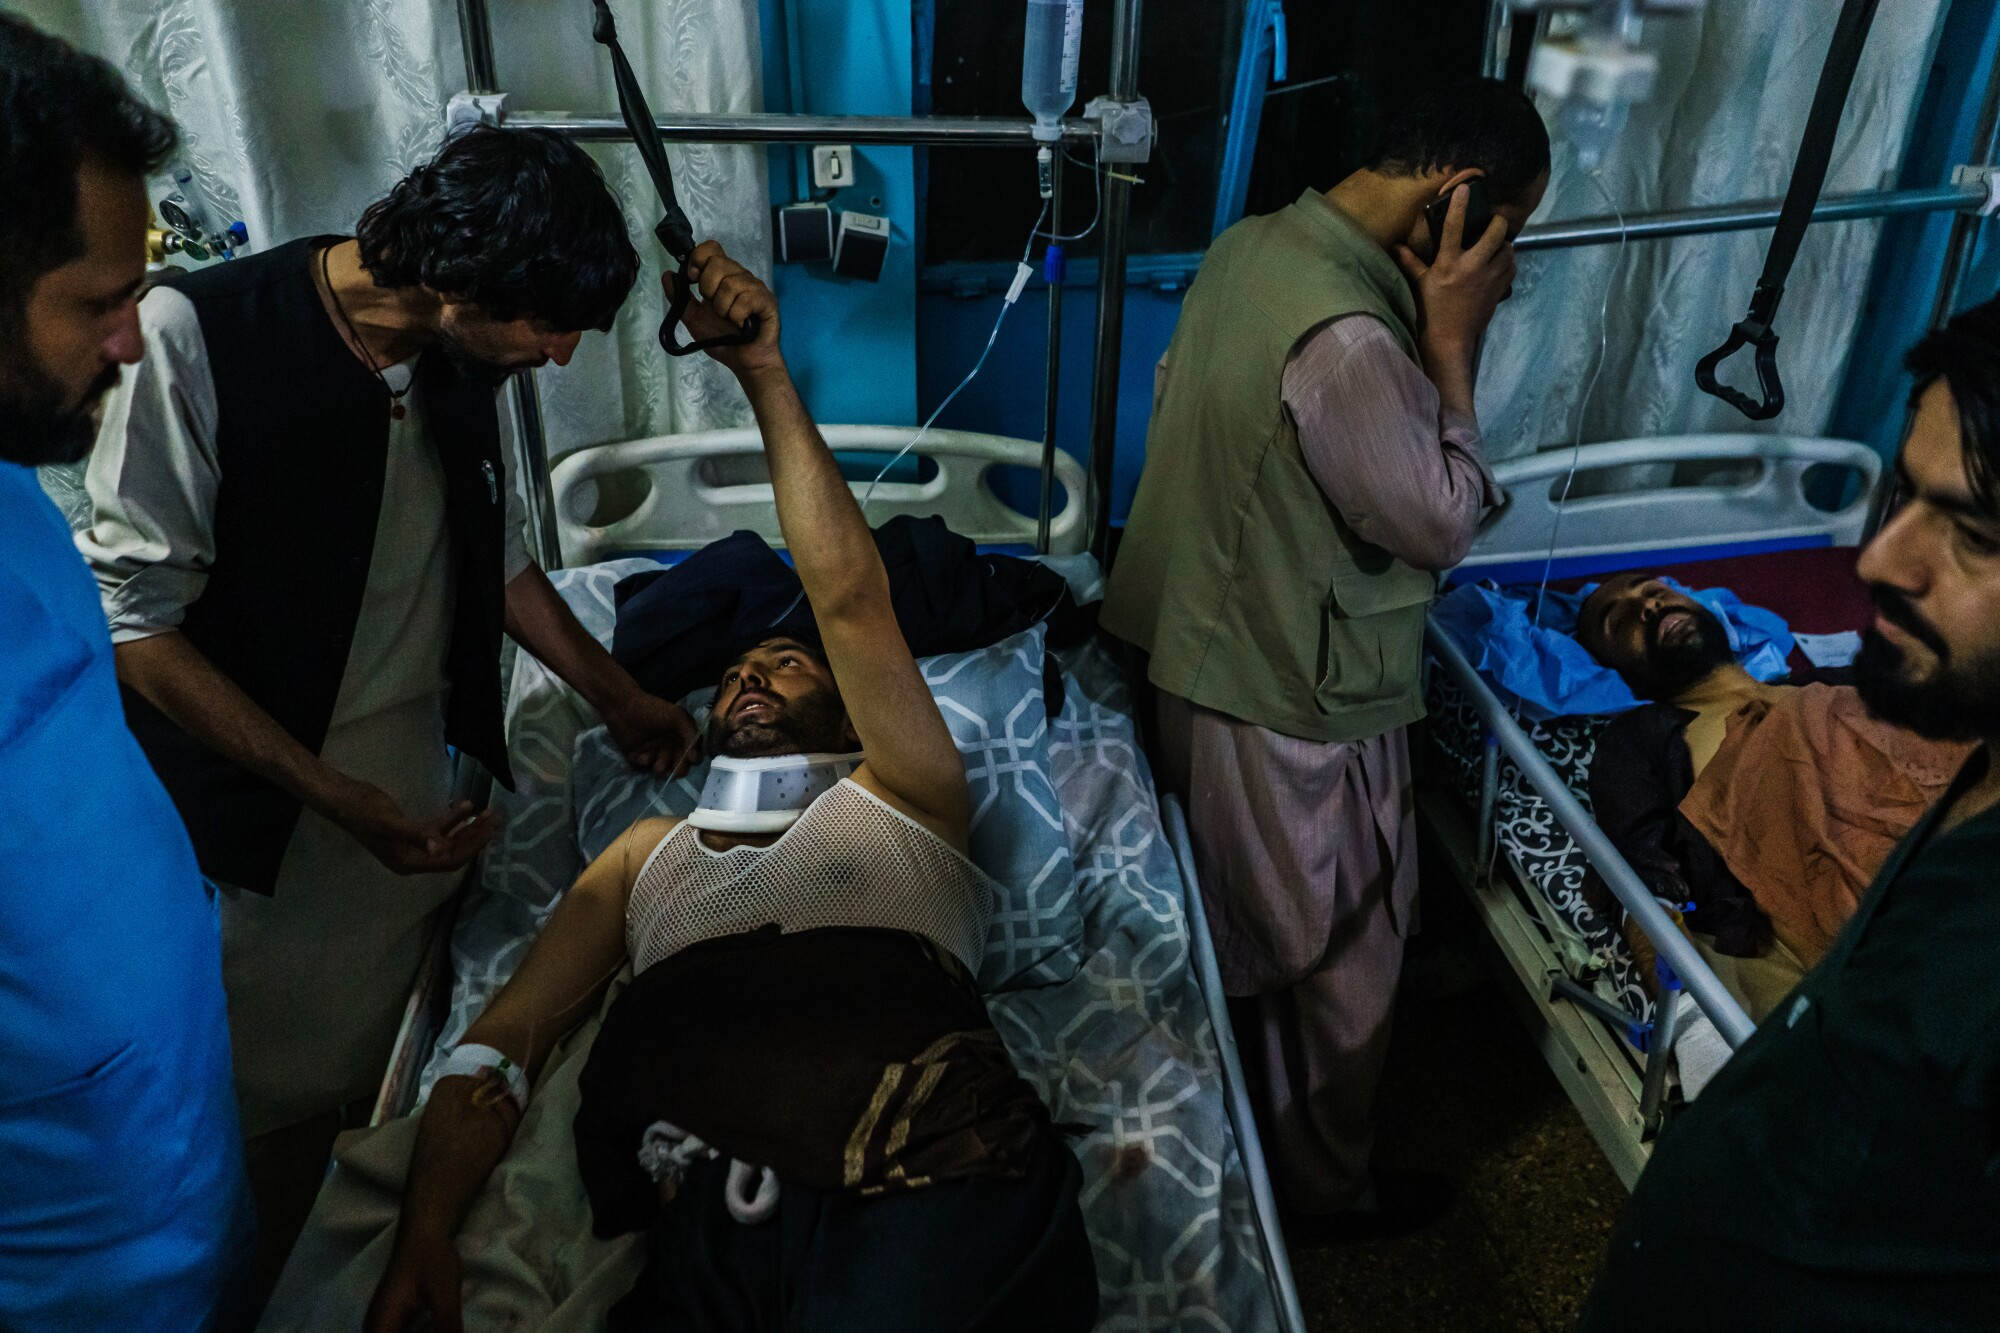 Family members visit wounded patients who have been admitted into Wazir Akbar Khan Hospital